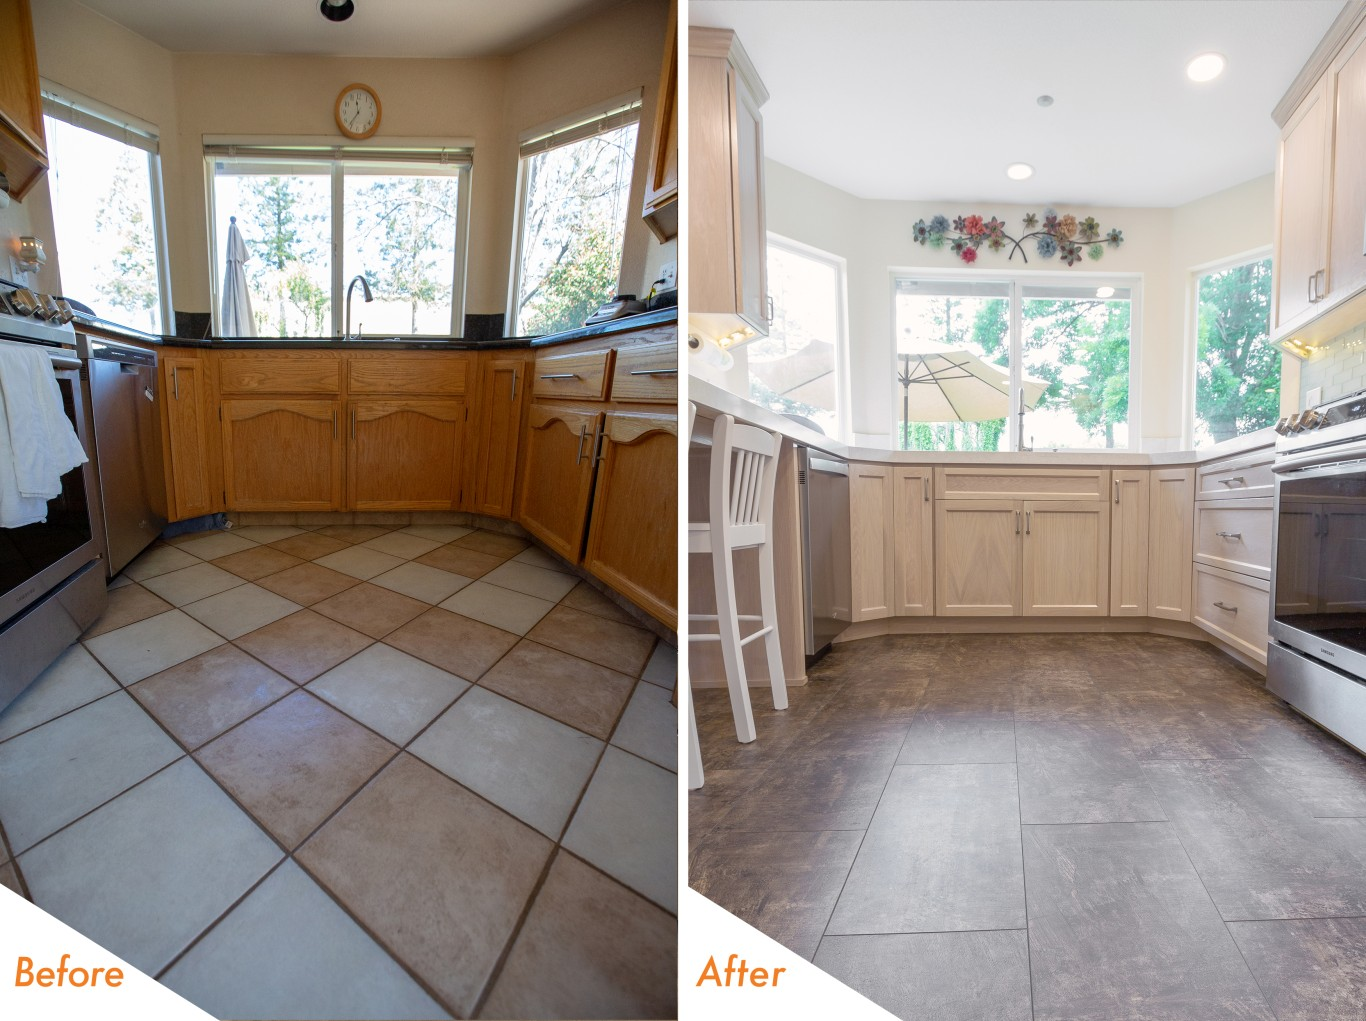 kcc Daisyfield Drive before and after renovation.